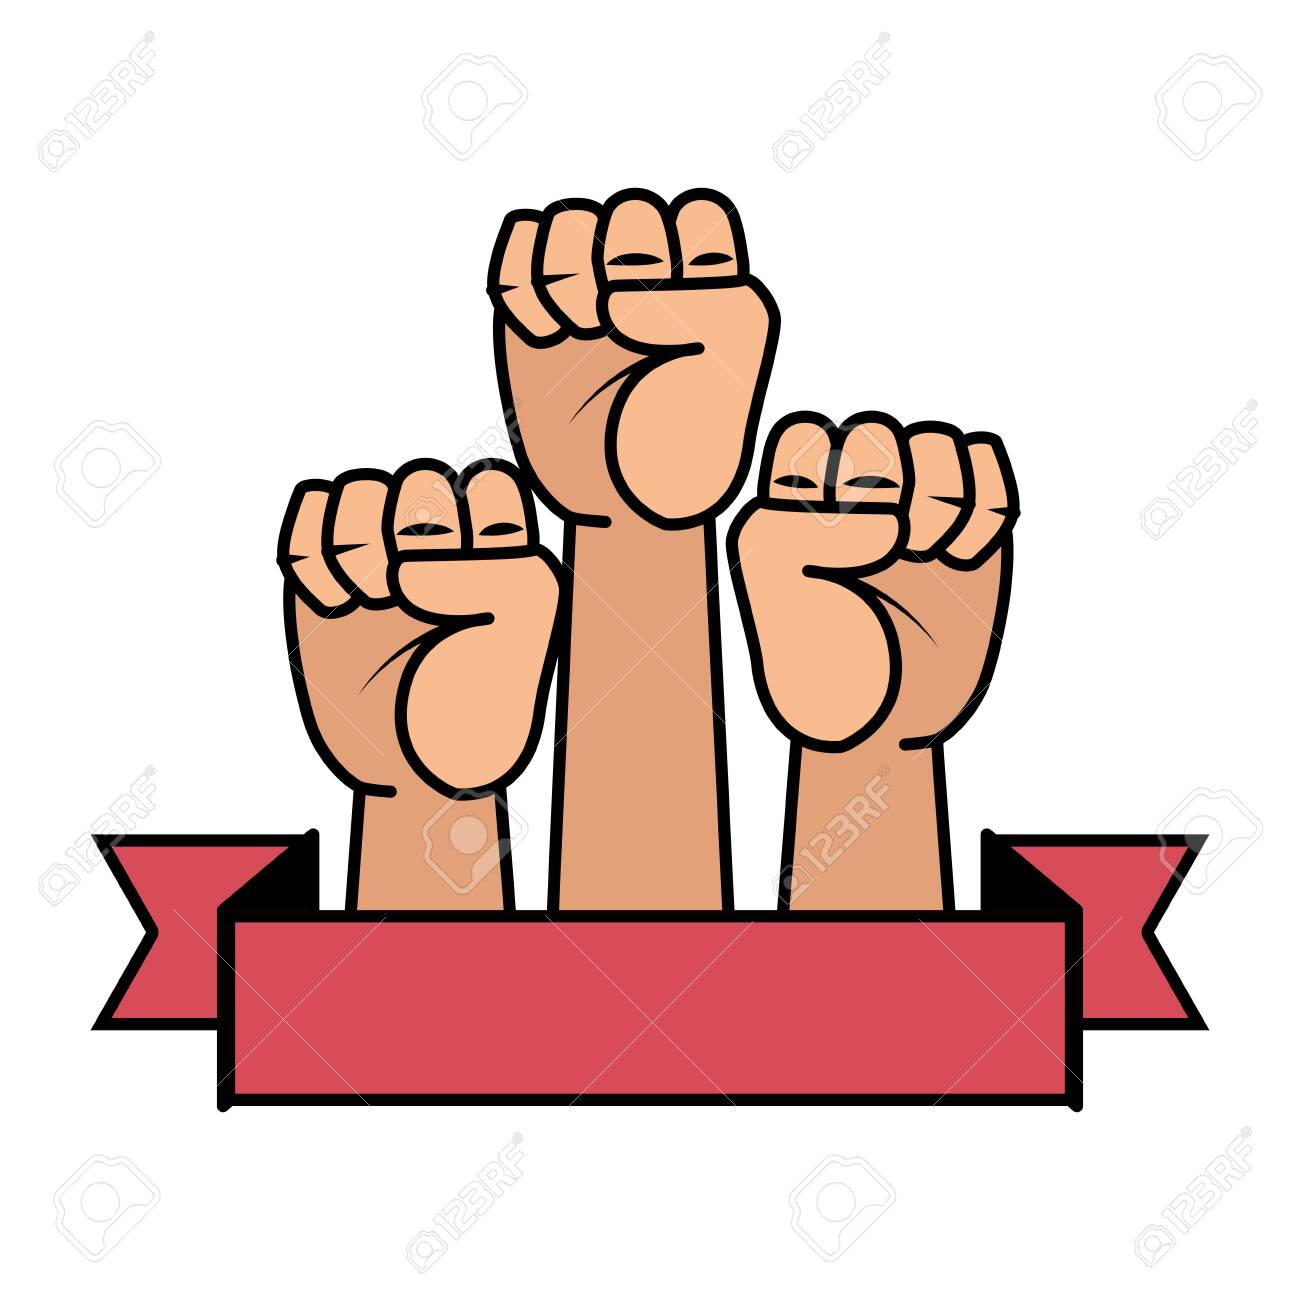 hands up fists icons vector illustration design - 129824957